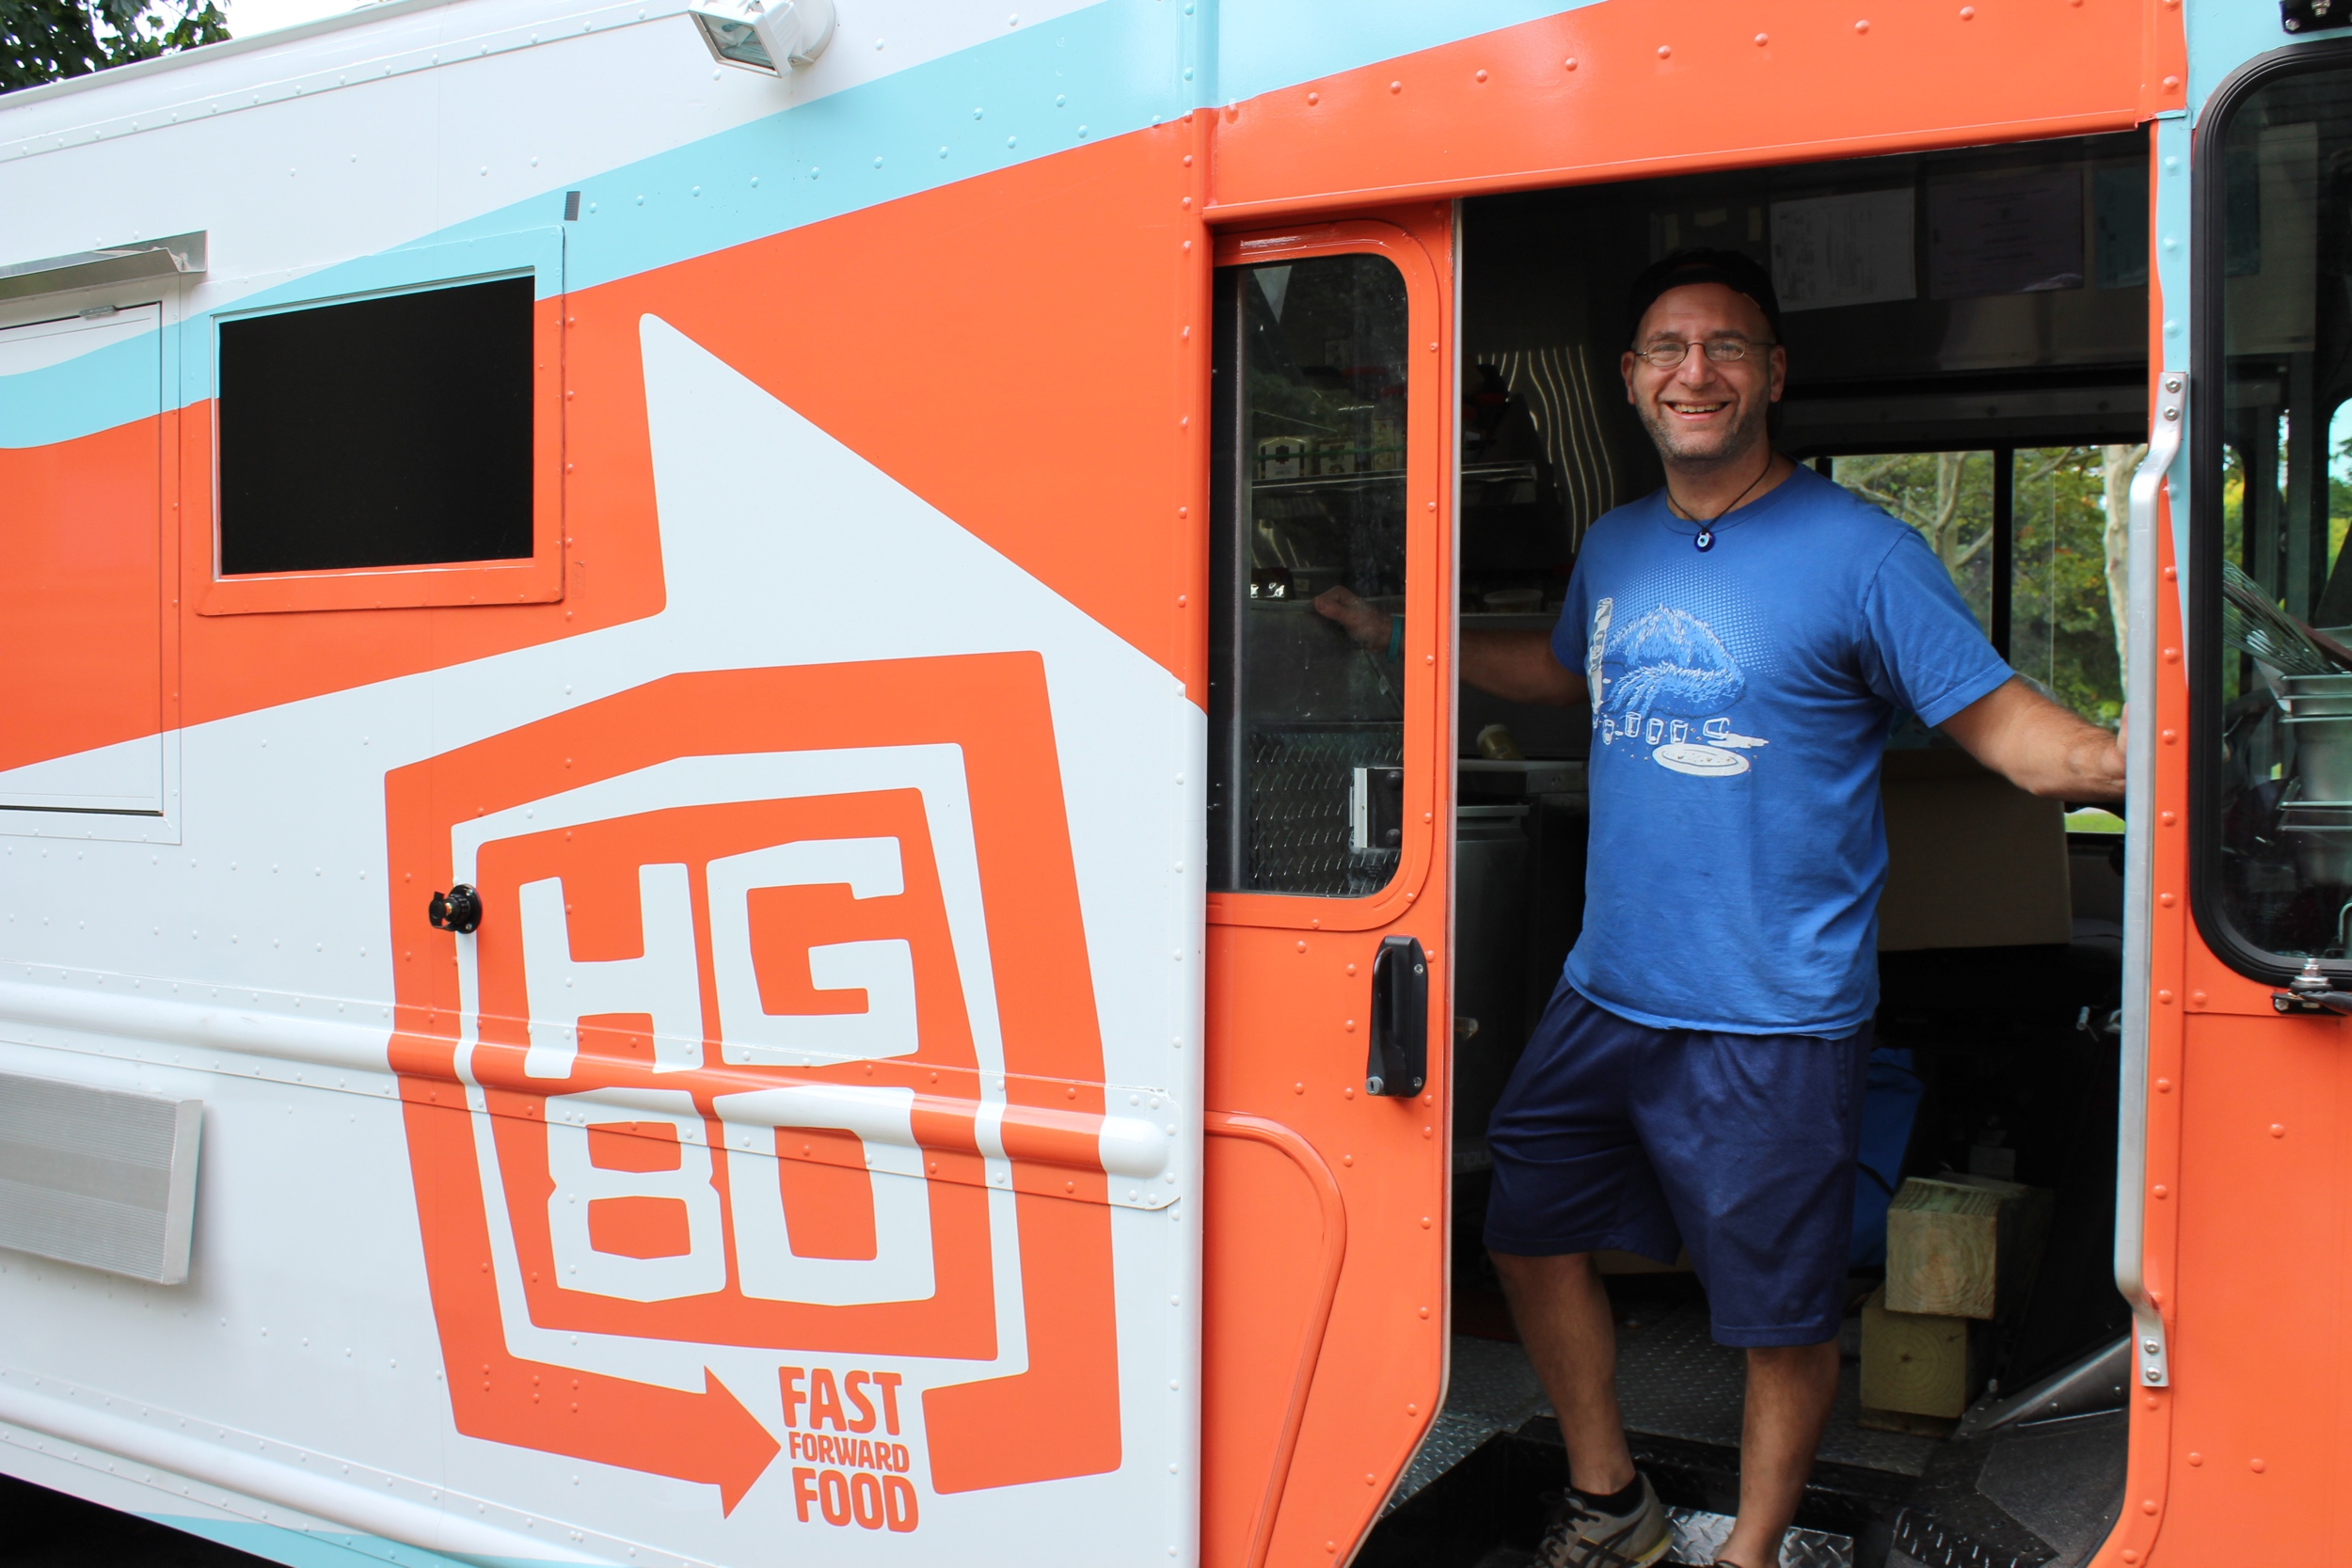 Providence's newest food truck, HG80, debuted at the House Tour Photo by Jessica Jennings